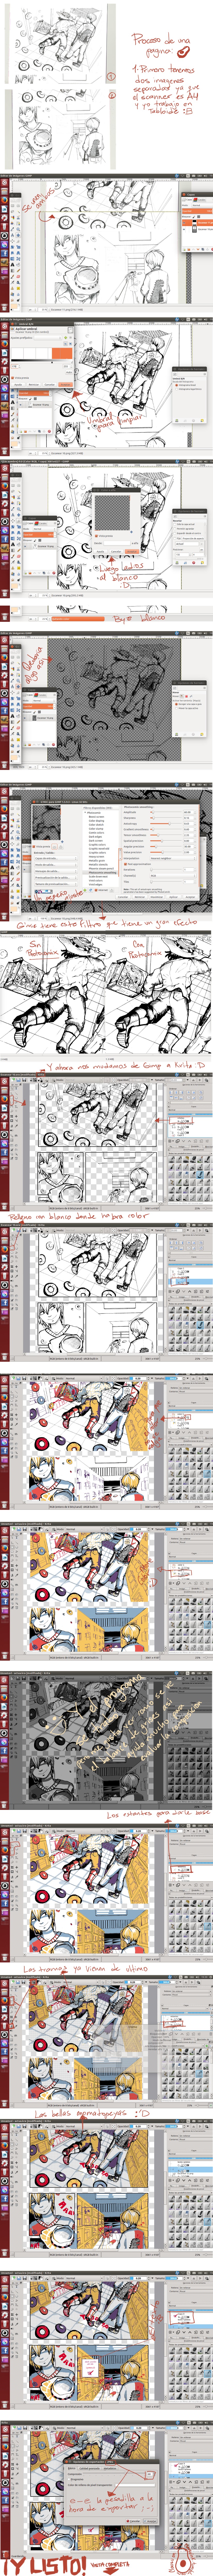 proceso__comic_page_by_clausu-d7rsirq.png